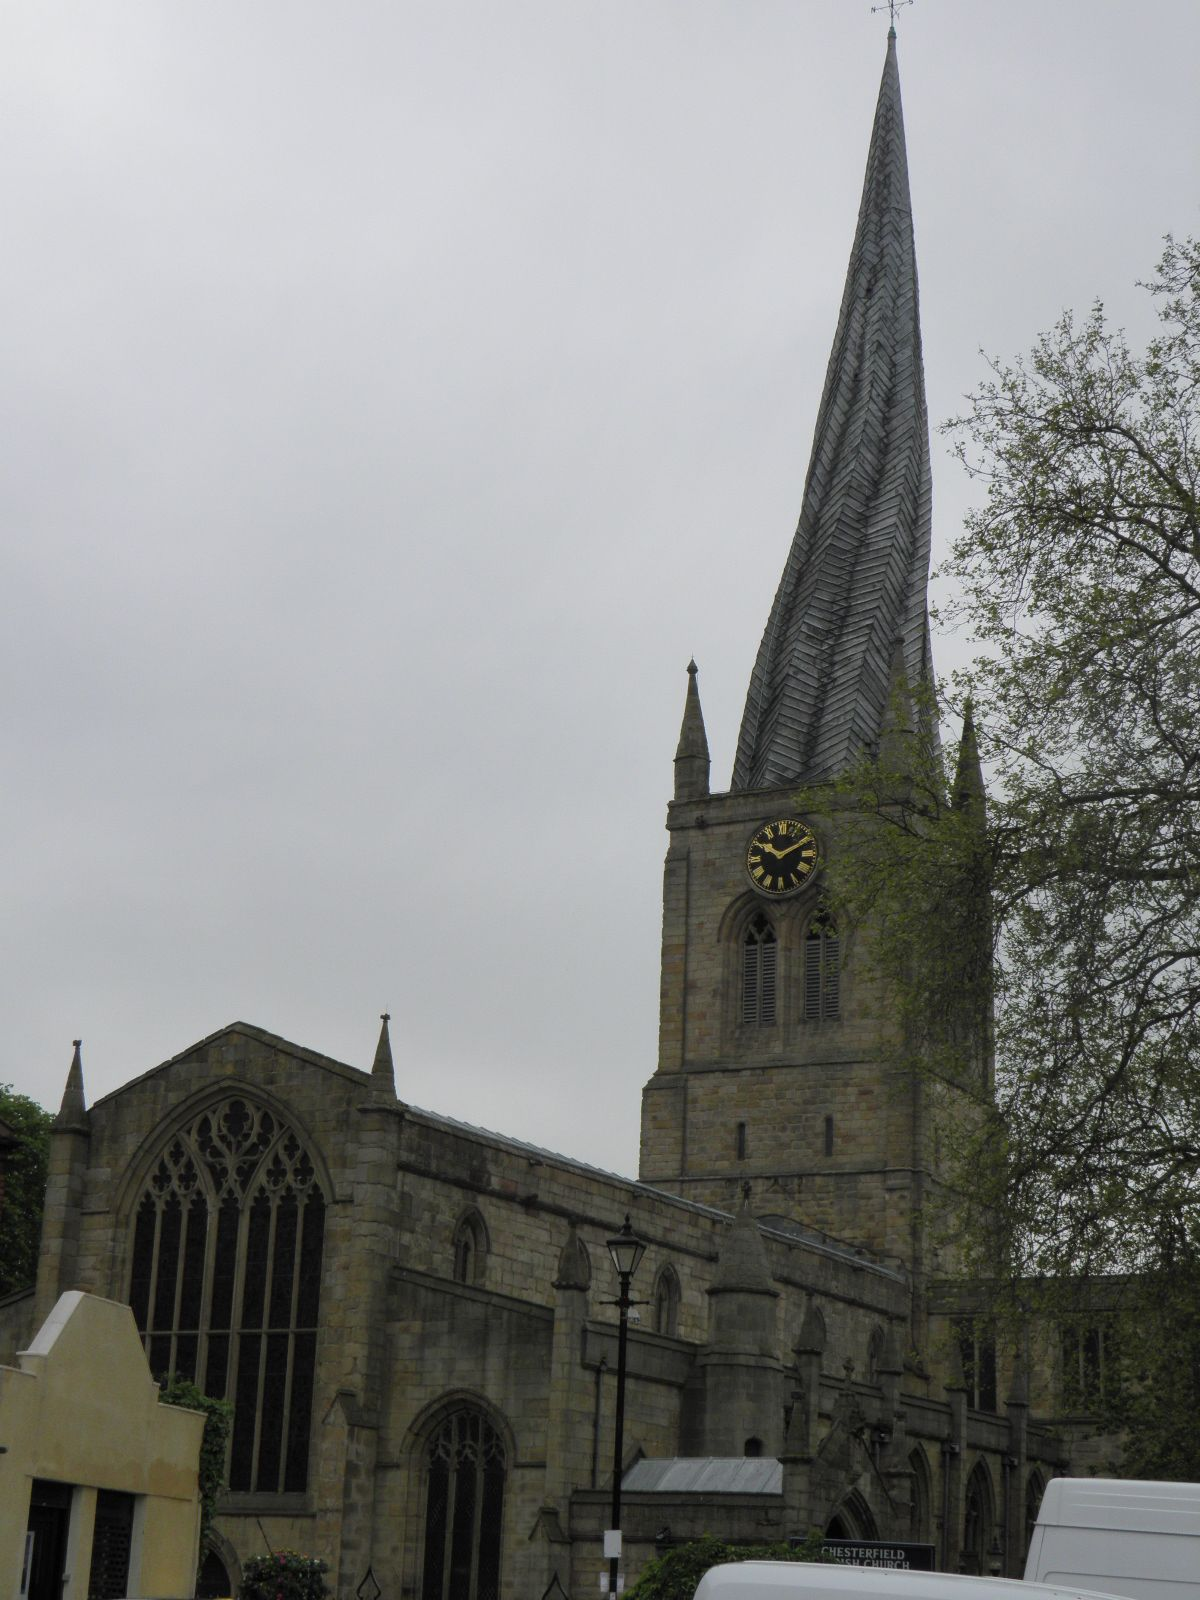 Chatsworth House Private Area: Crooked Church Spire In Chesterfield. Good Town To Kick